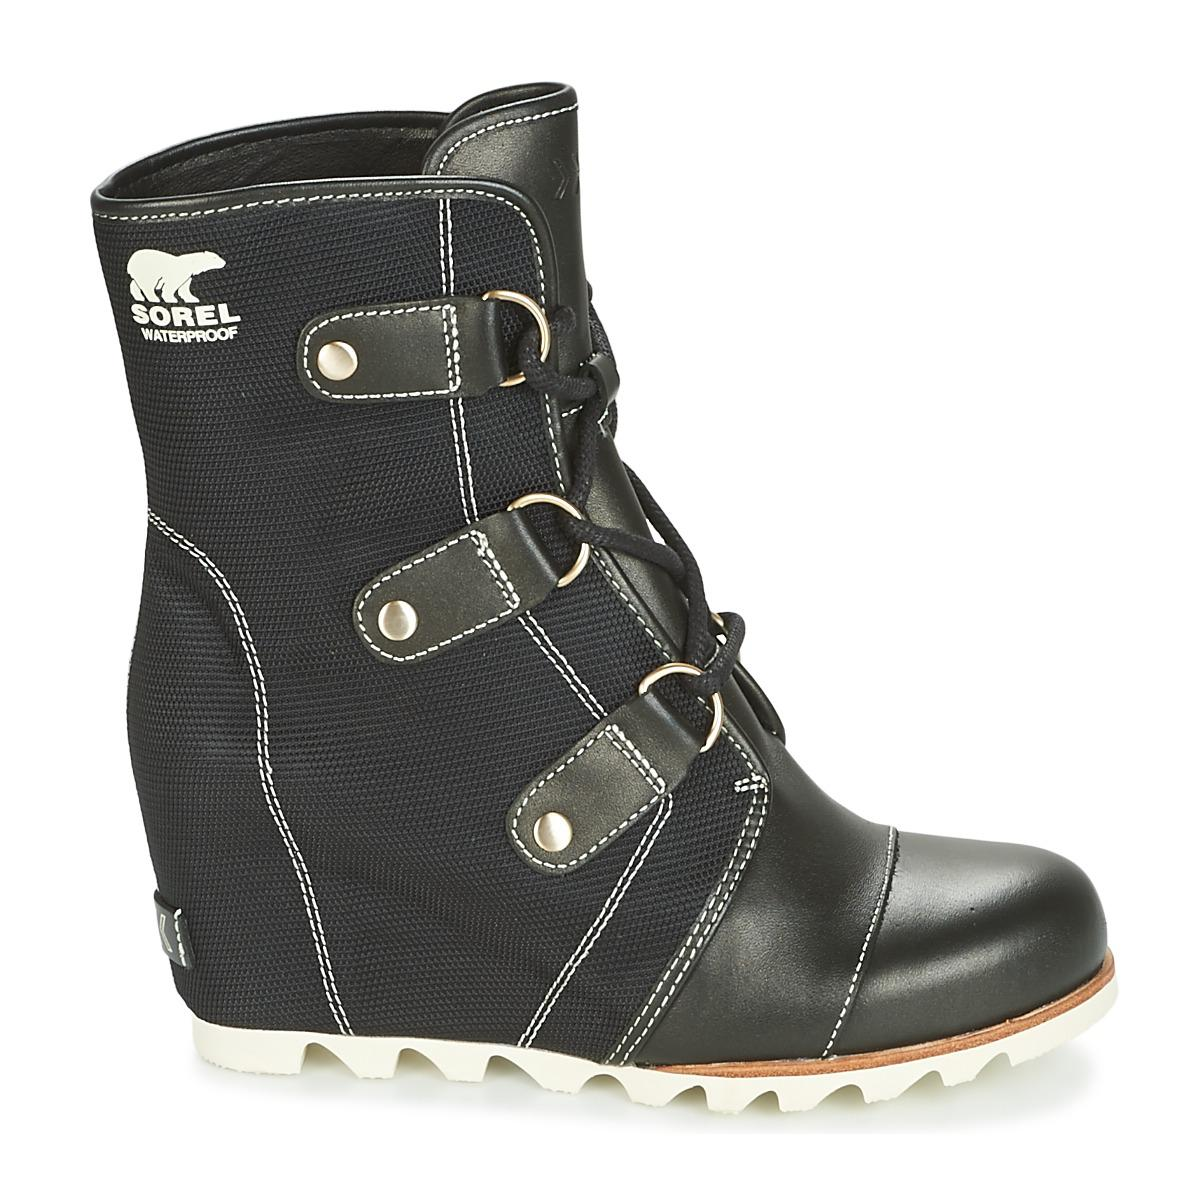 f8d9cee10889 Sorel - Joan Of Arctic Wedge Mid X Celebration Women s Snow Boots In Black  - Lyst. View fullscreen